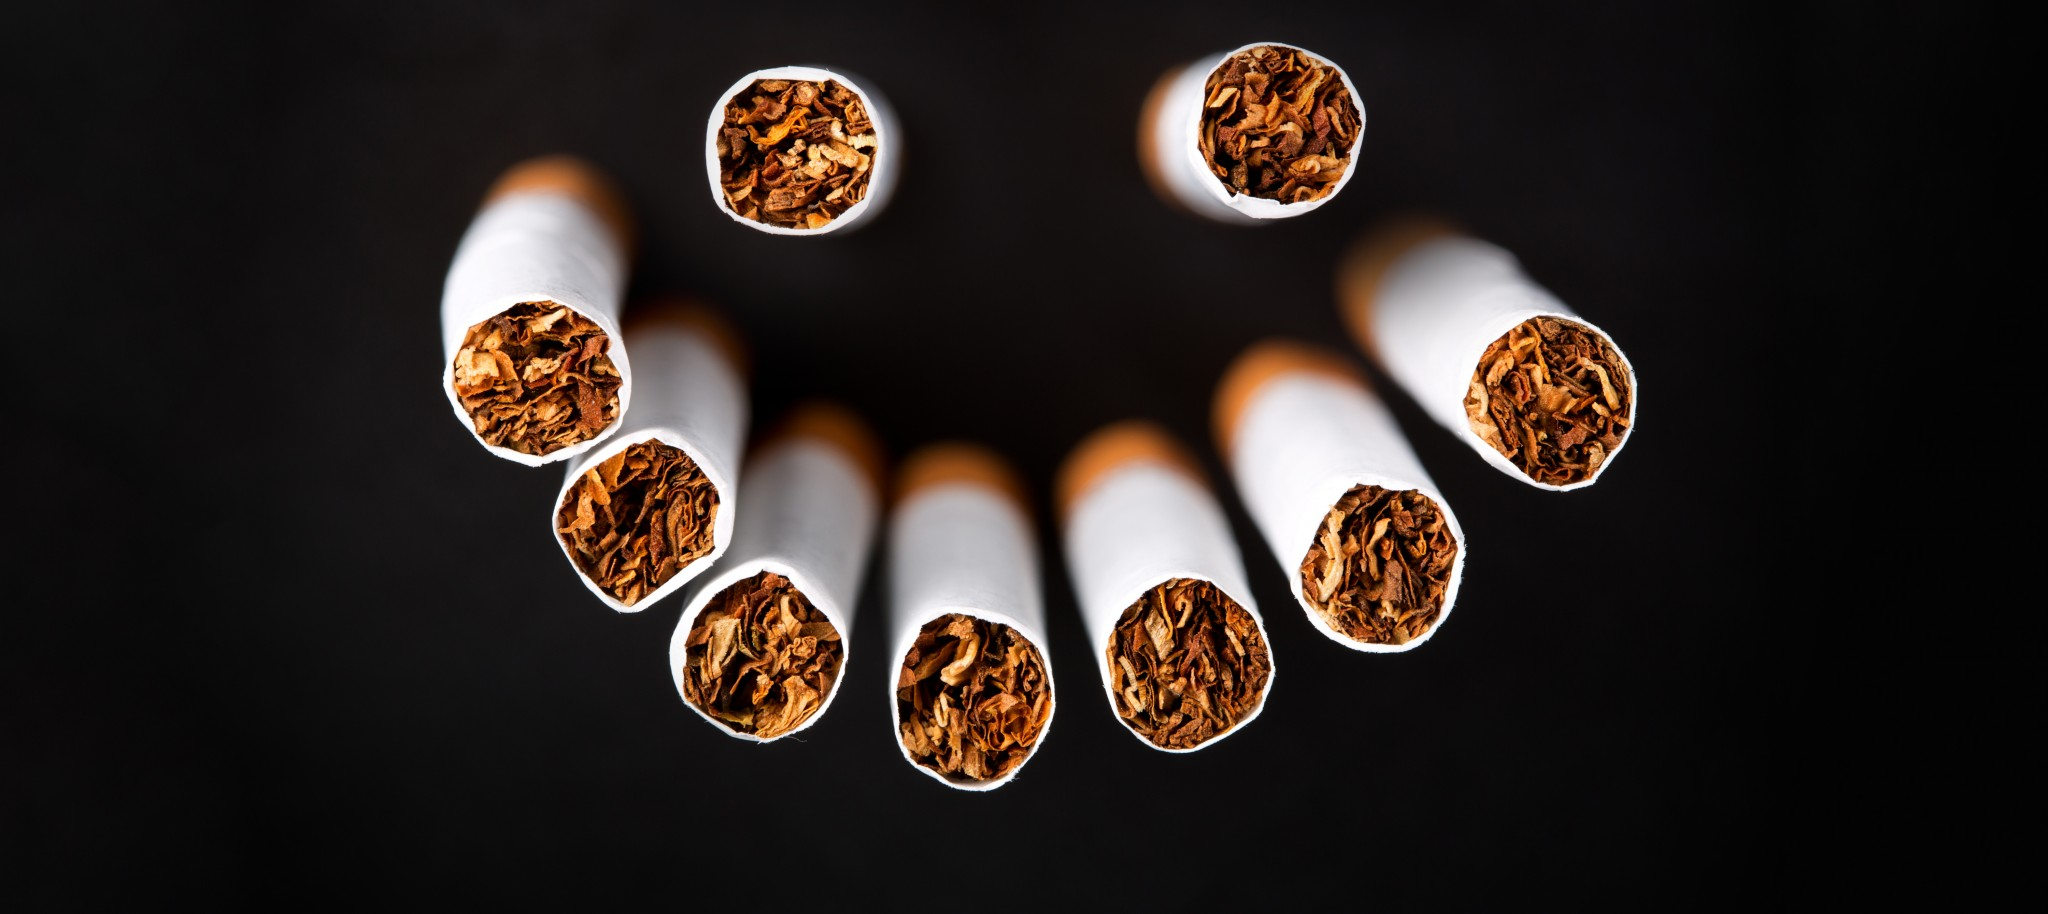 Can We Use Happiness to Evaluate Tobacco Legislation?